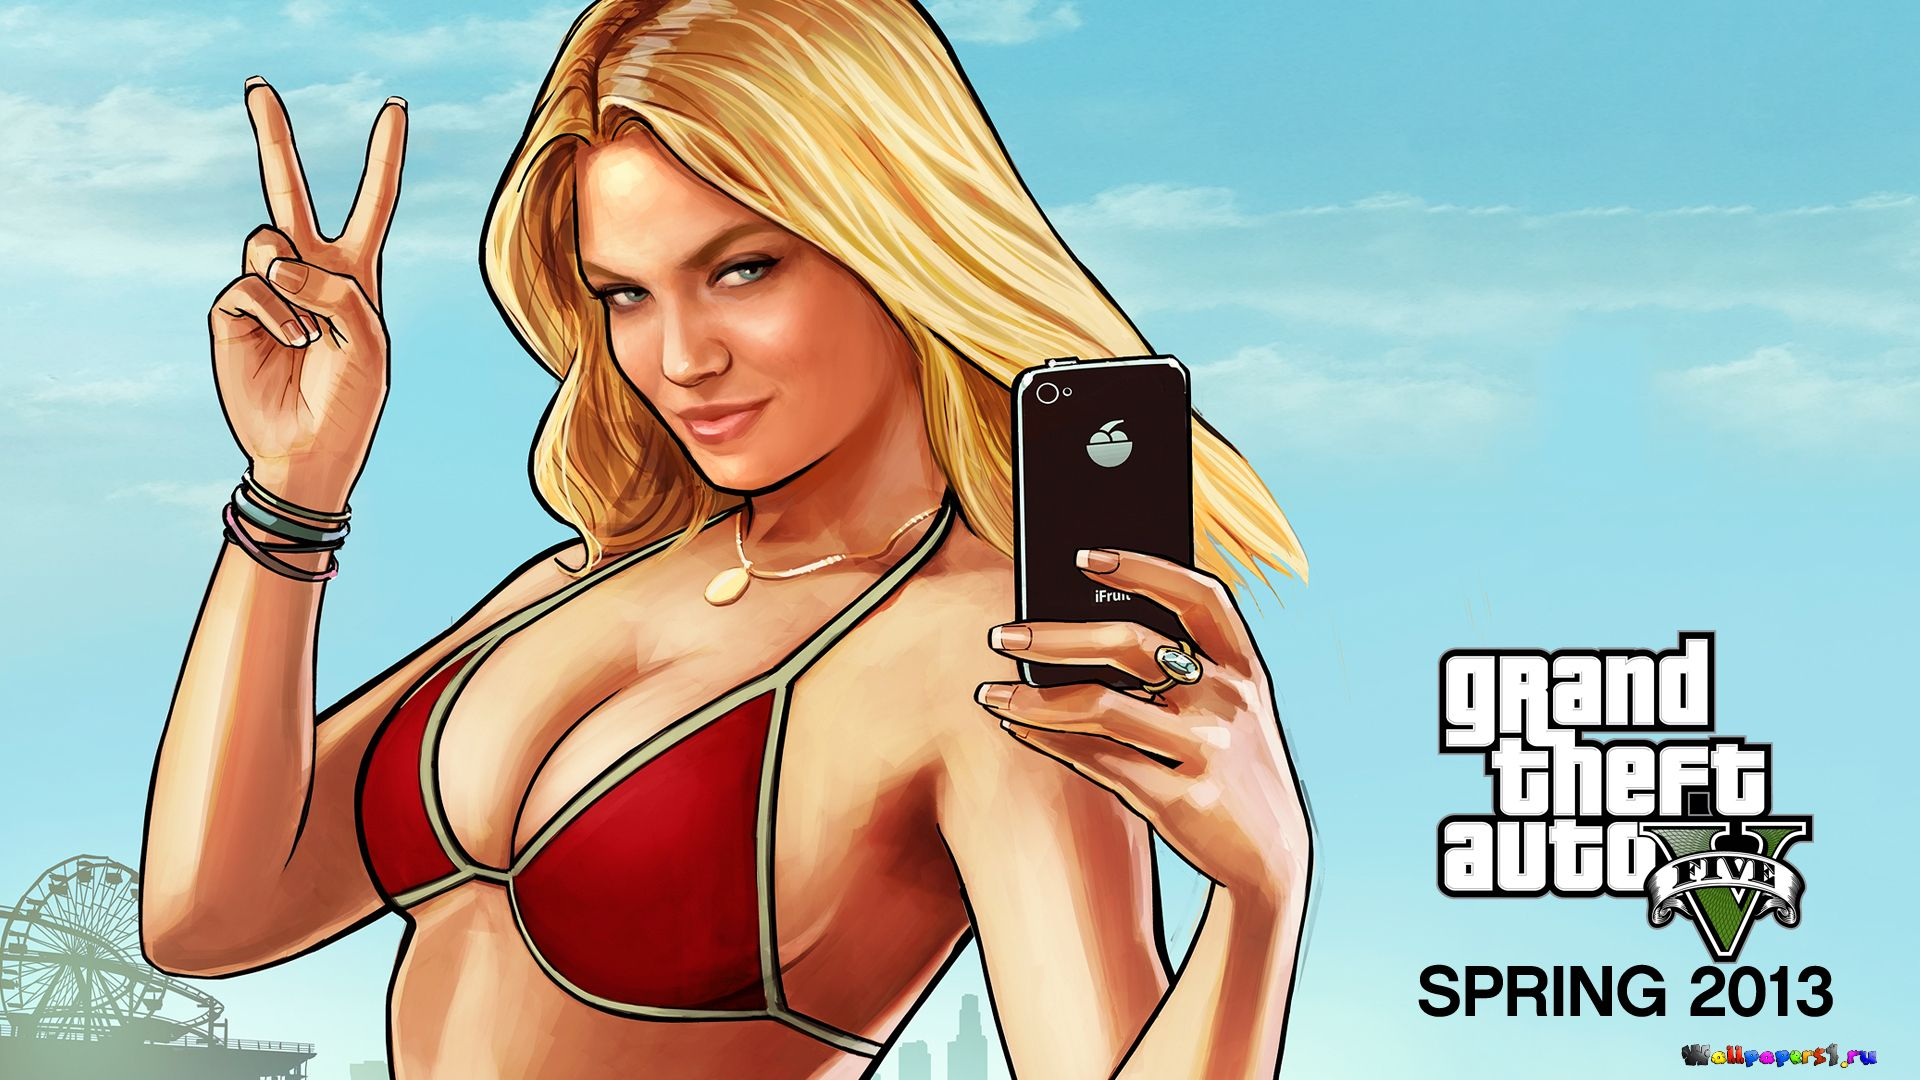 Gta5 prono nude video